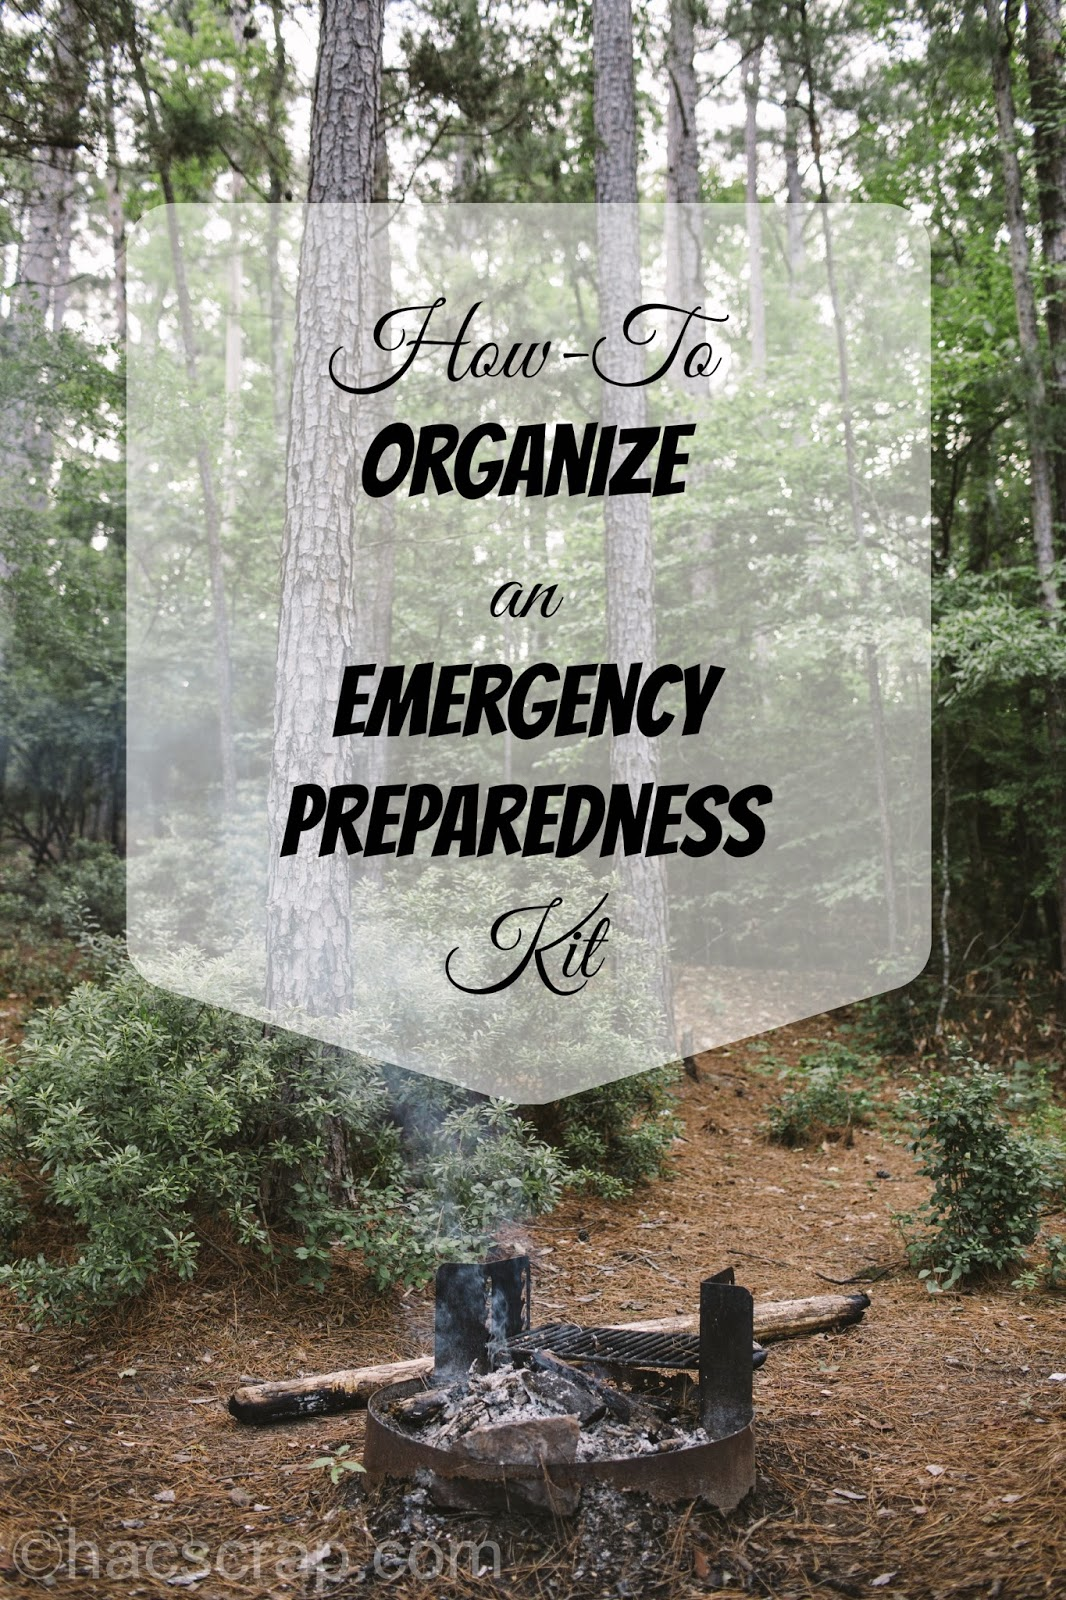 How-To Organize an Emergency Preparedness Kit | My Scraps